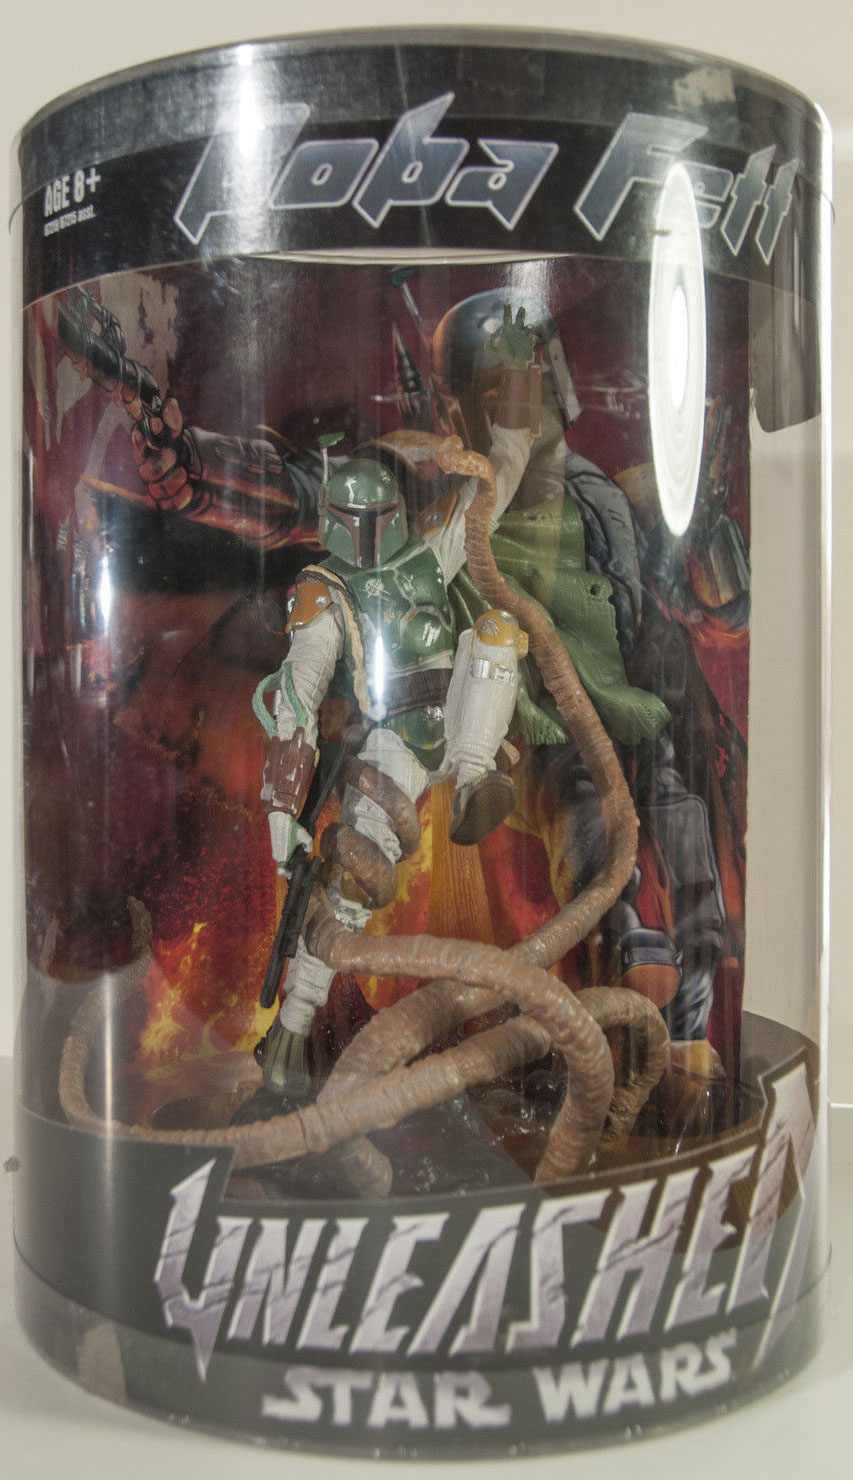 Unleashed Boba Fett, Repack (Target Exclusive) (2006)